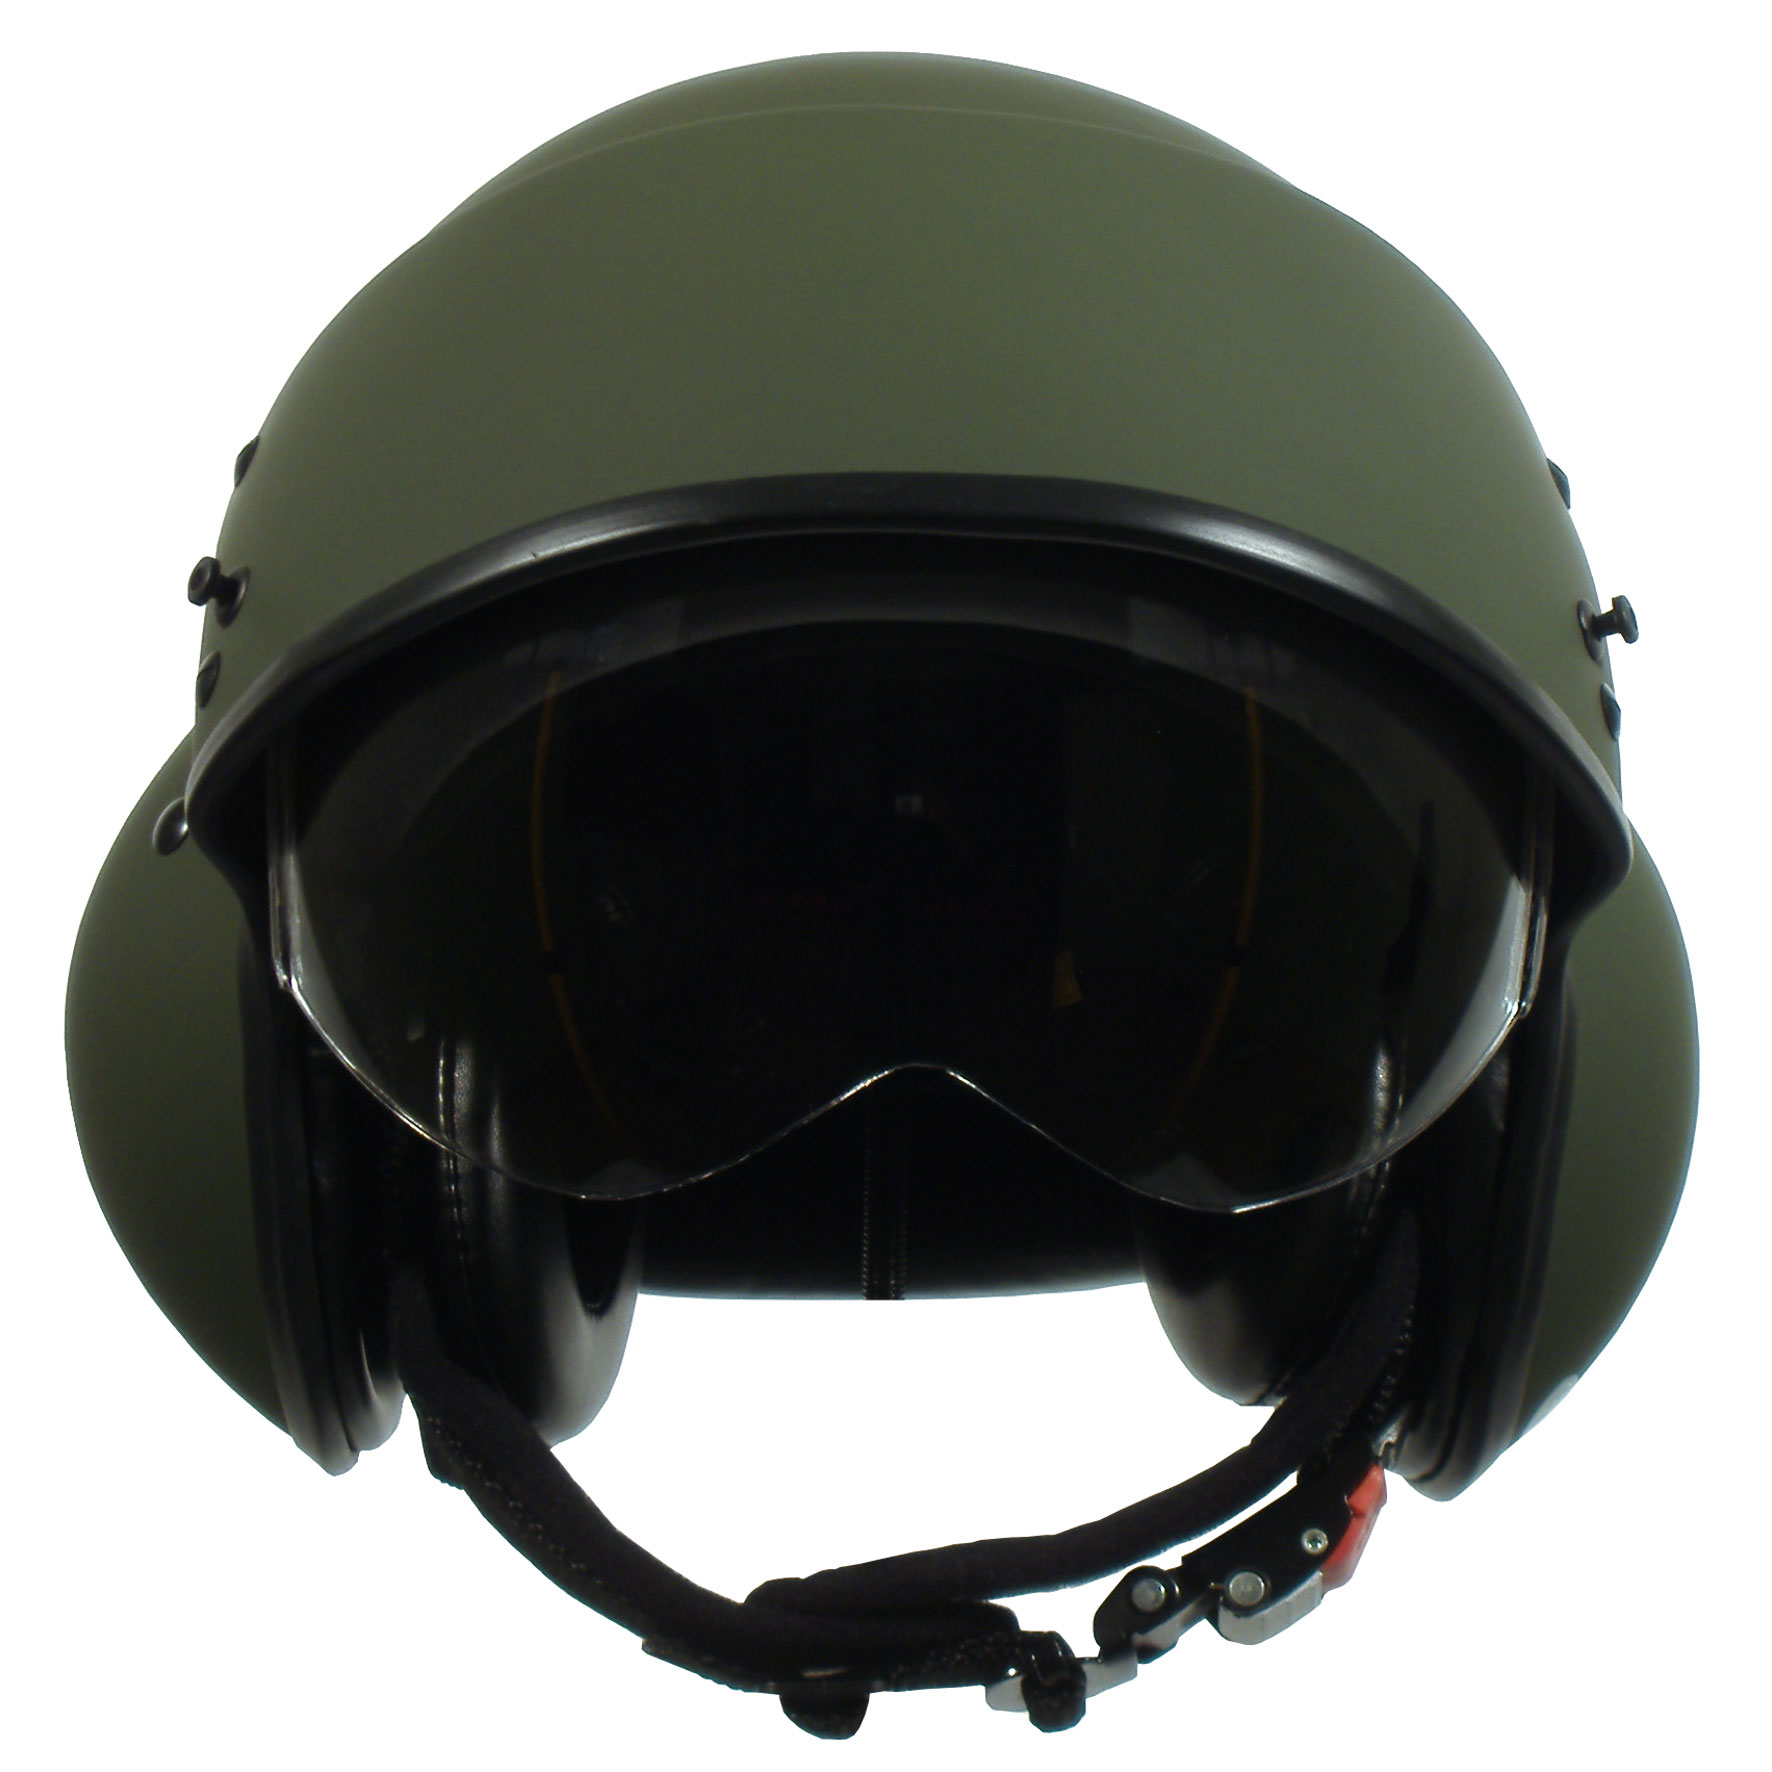 helicopter pilot helmets with Chopper Custom Piloten Jet Helm Fighter Matt Gruen on Elbit Apache Helmets in addition Battlefield 1 They Shall Not Pass Check Out 6 New Melee Weapons And All The New Weapon Skins besides F 16 News Article2794 furthermore Pilot Helmet likewise Agv Diesel Hi Jack Dot Blackgreen Helmet.